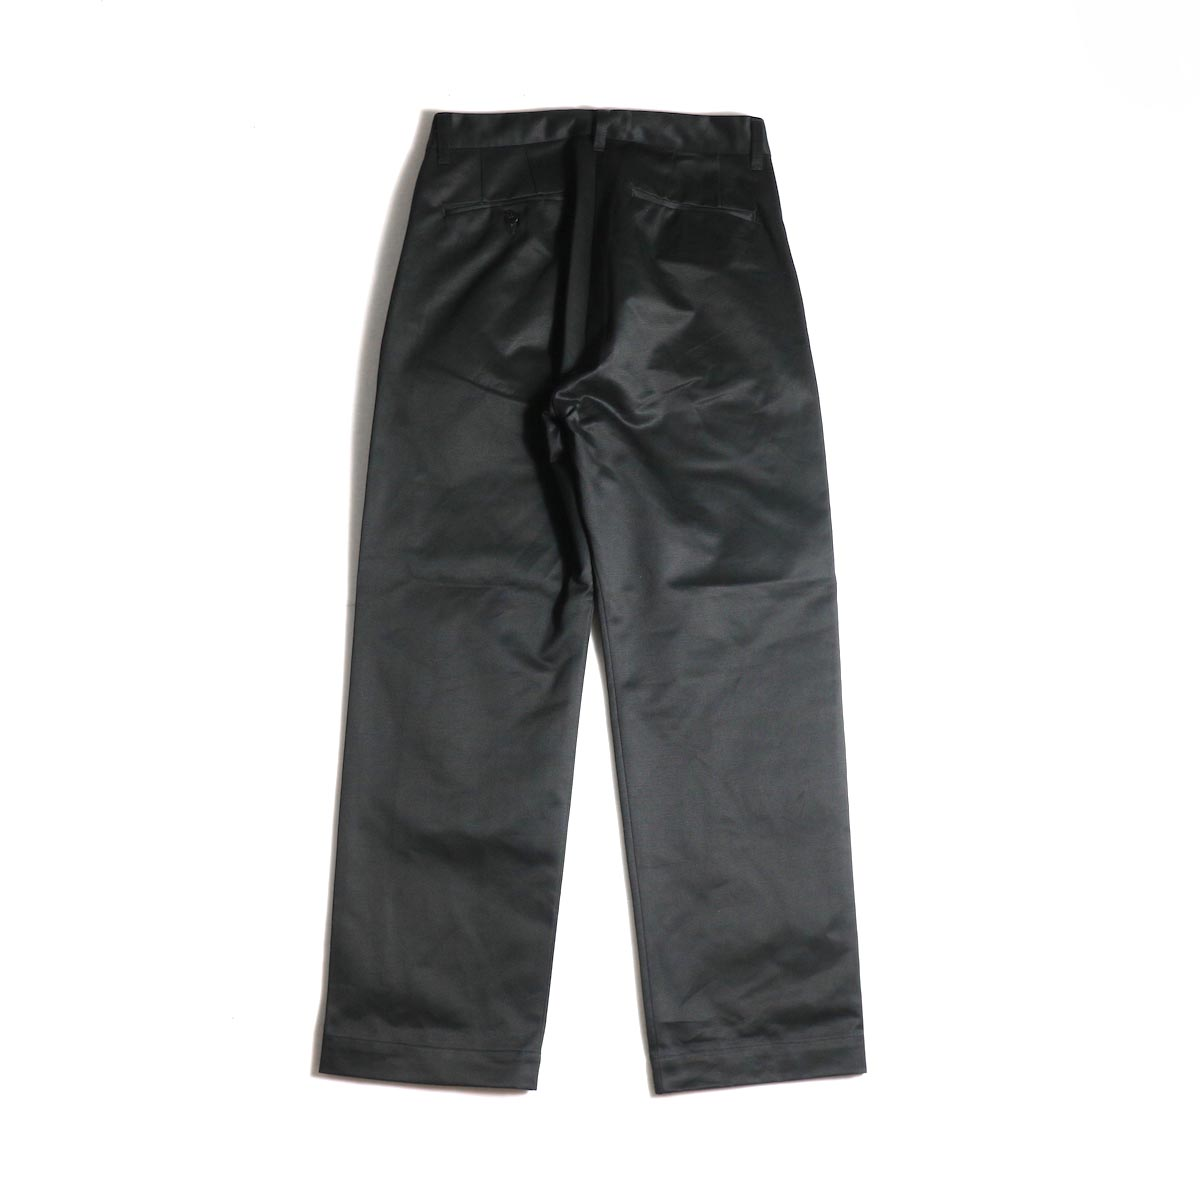 FUTURE PRIMITIVE / FP FZ CHINO PANTS (Black)背面